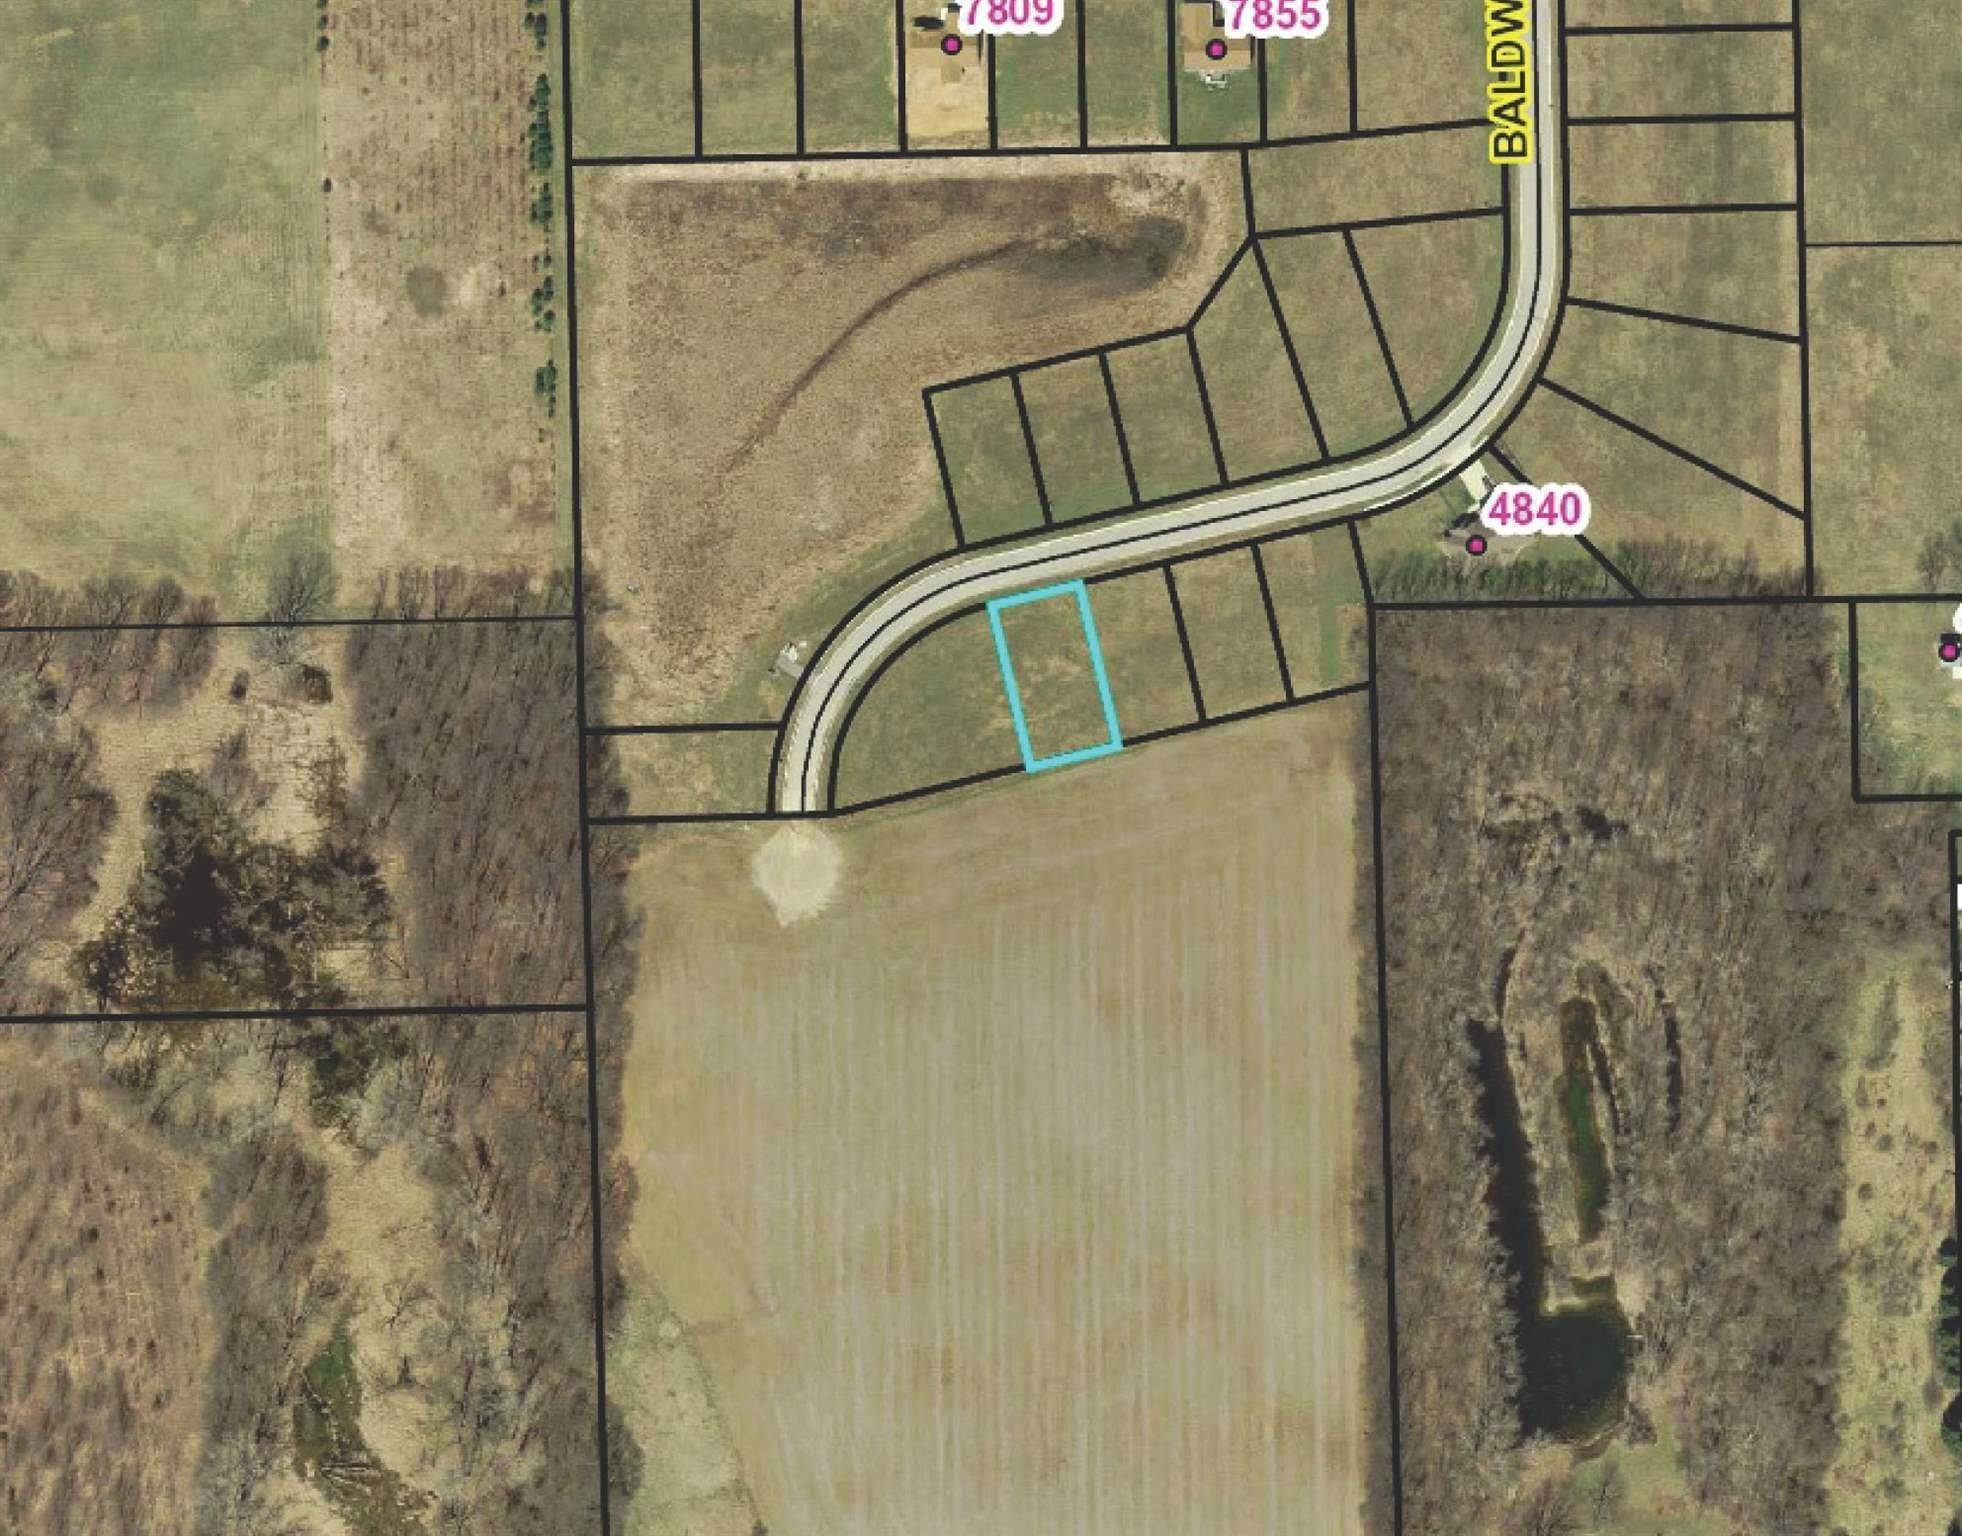 Residential Lots & Land for Sale at N Baldwin Road North Webster, Indiana 46555 United States